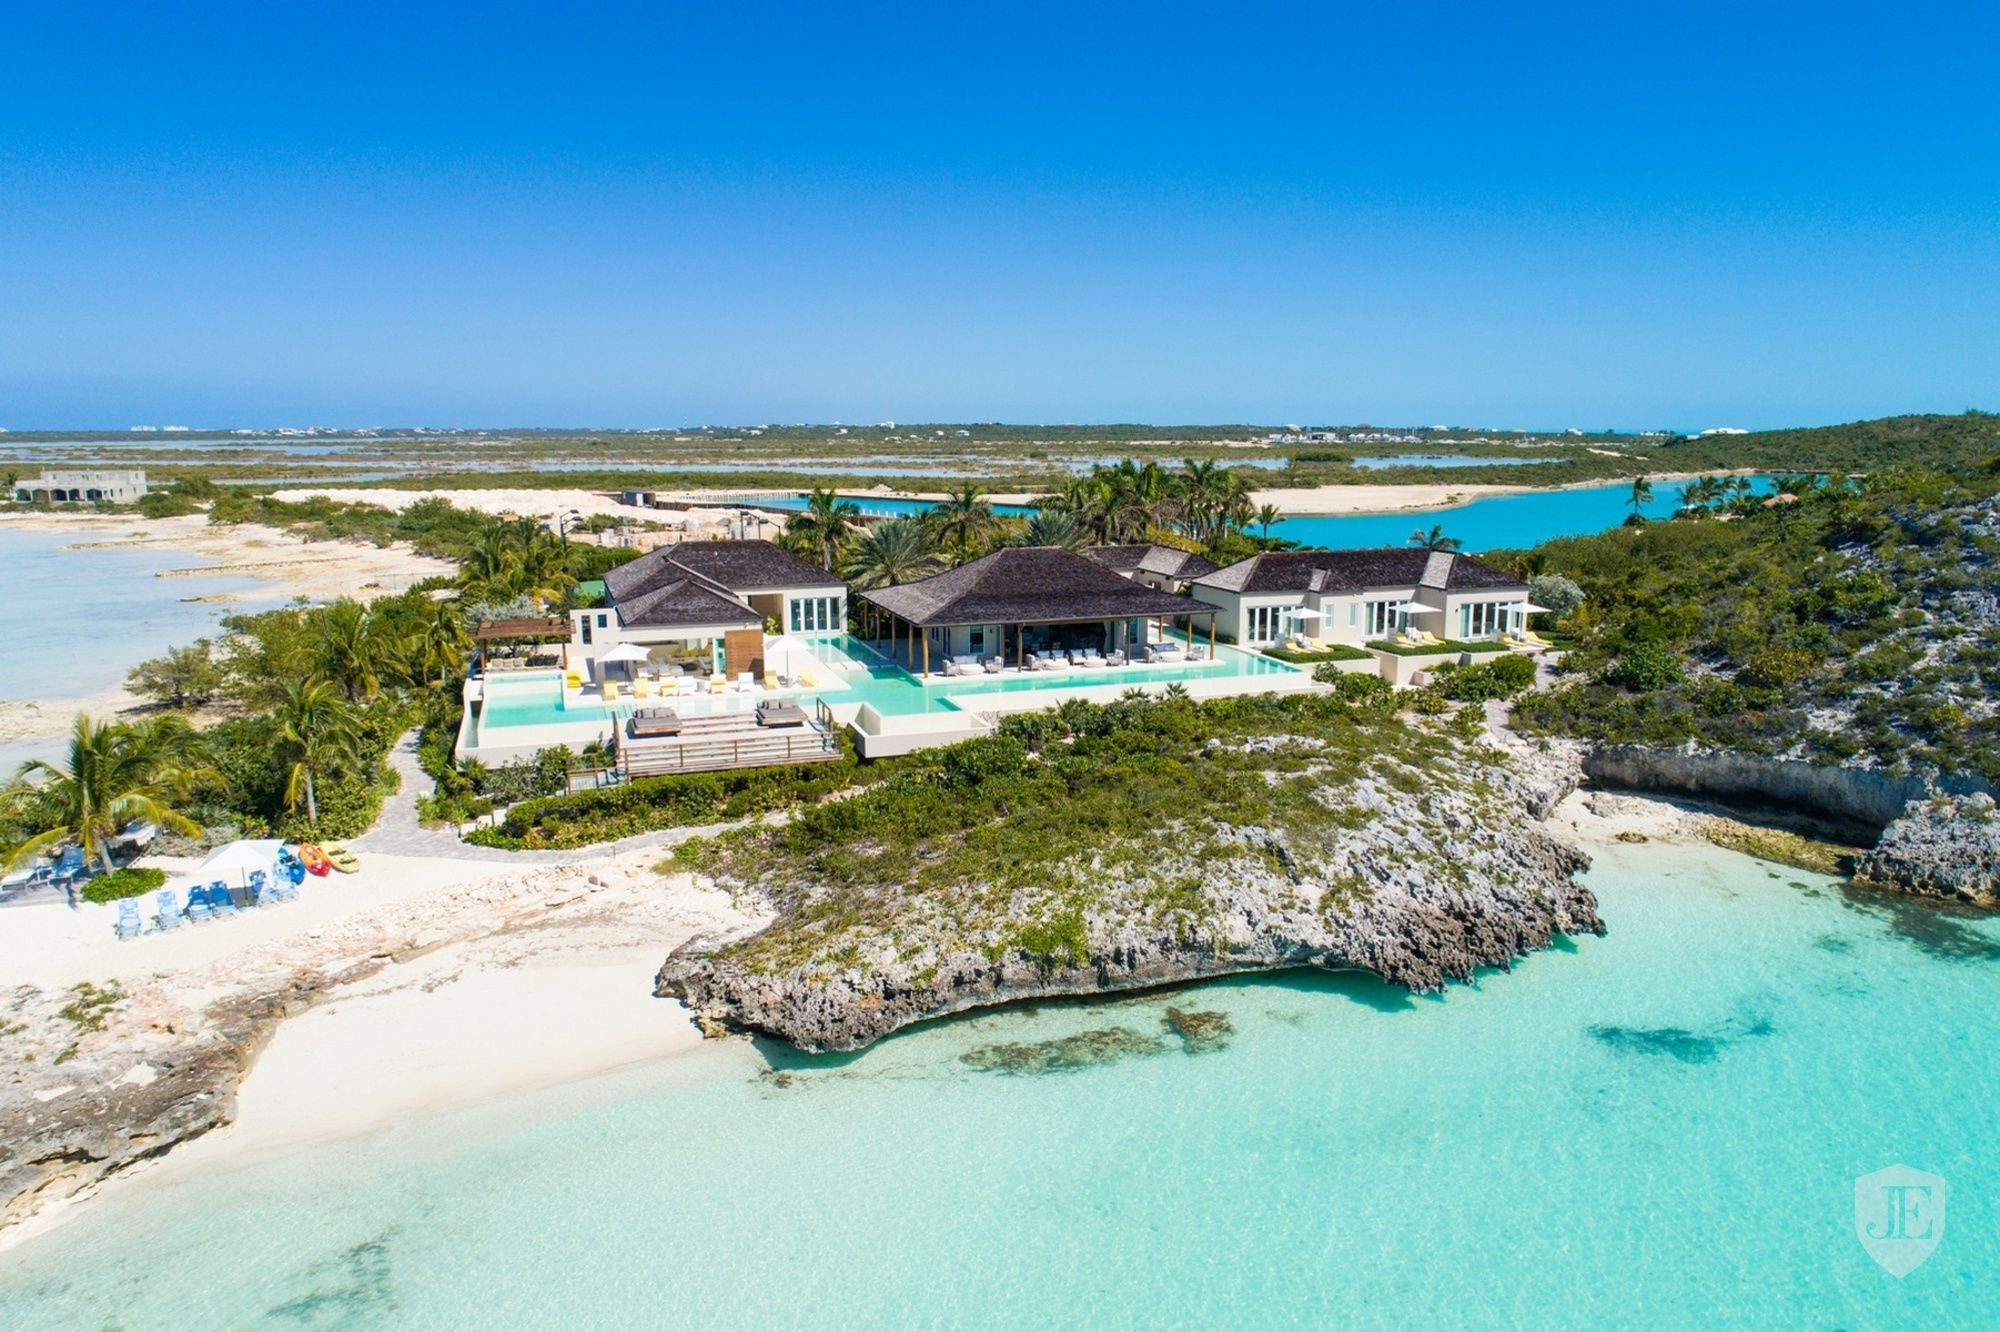 Pin By Mohamed A M R On Beach Homes In 2020 Turks And Caicos Estates Real Estate